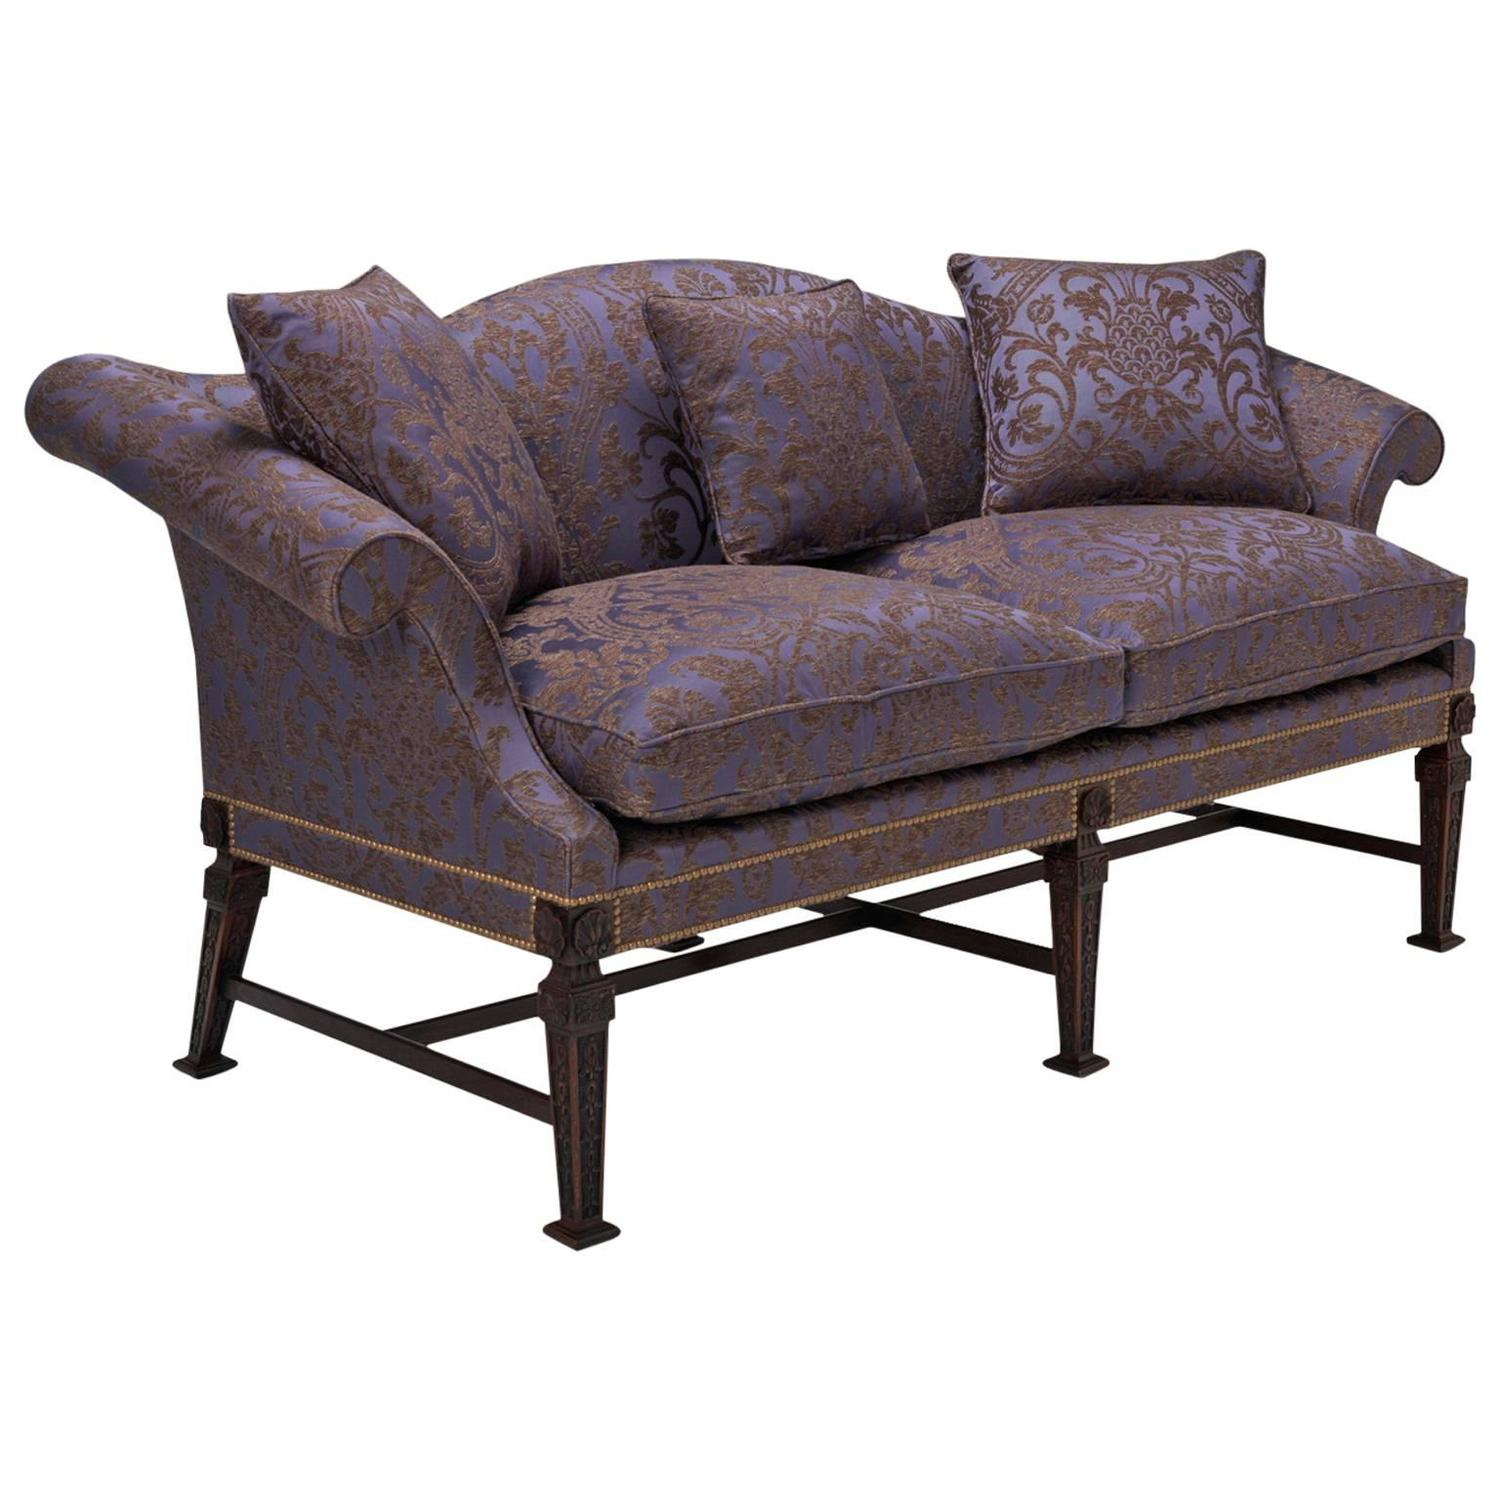 Reupholster Leather Sofa Cost Images How Much Does It